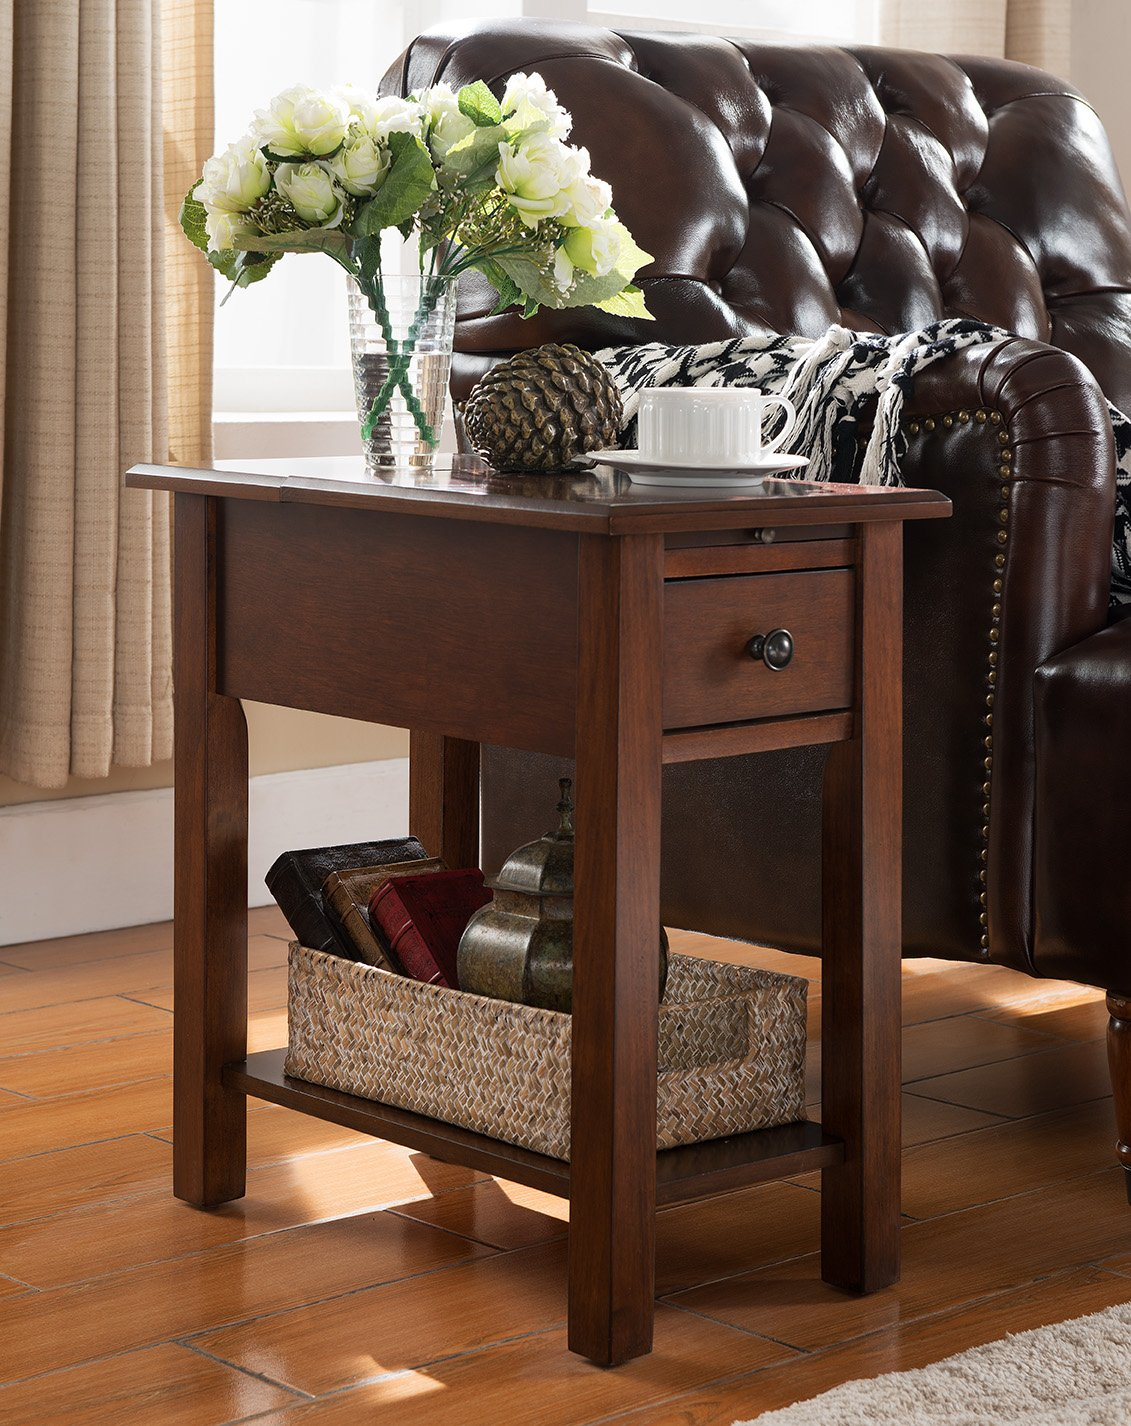 Side Table with Charging Station in Espresso OneSource Living OSL4